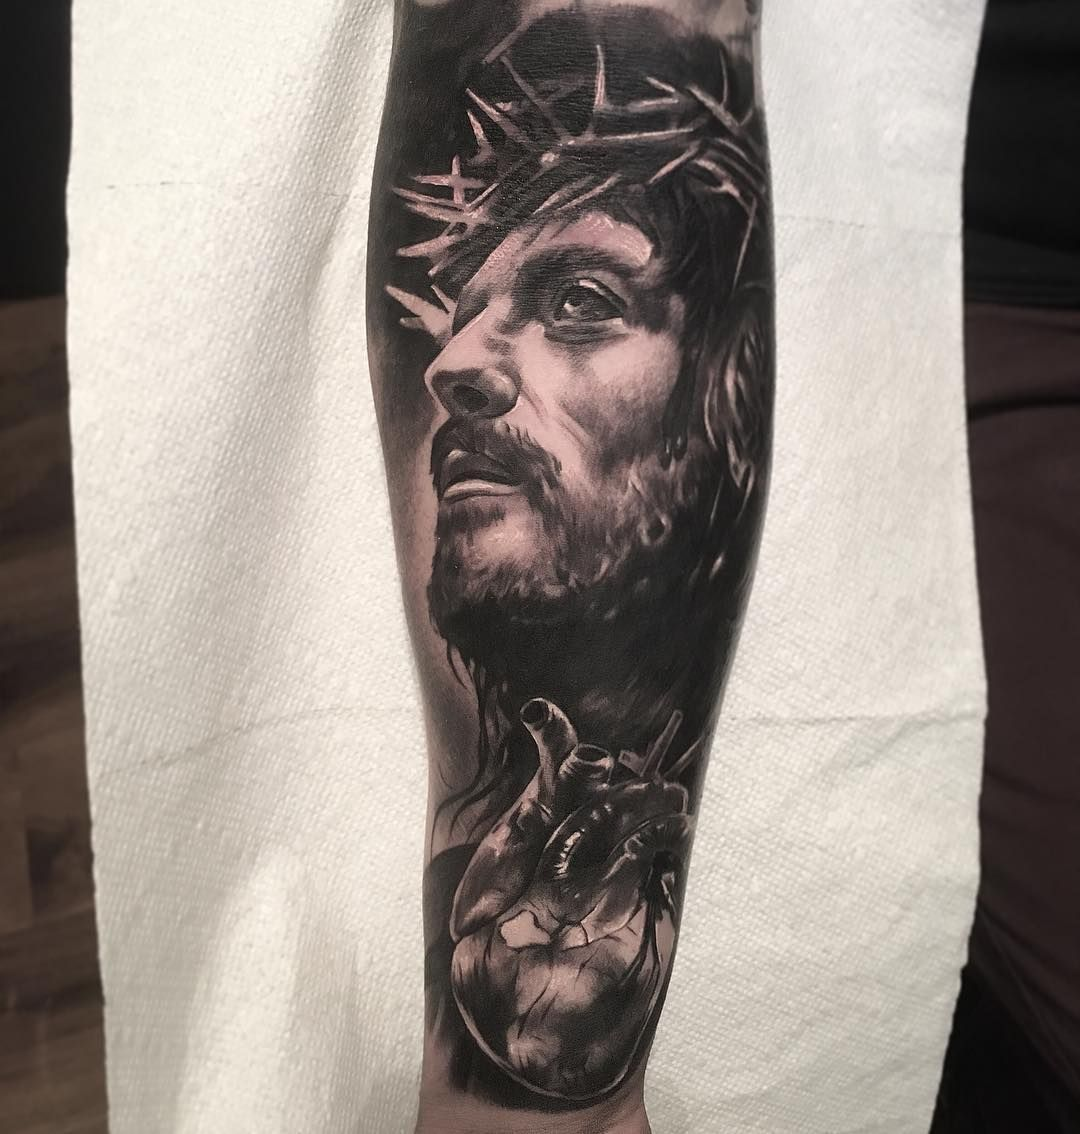 Fred flores tattoos ideas pinterest for Fred flores tattoo